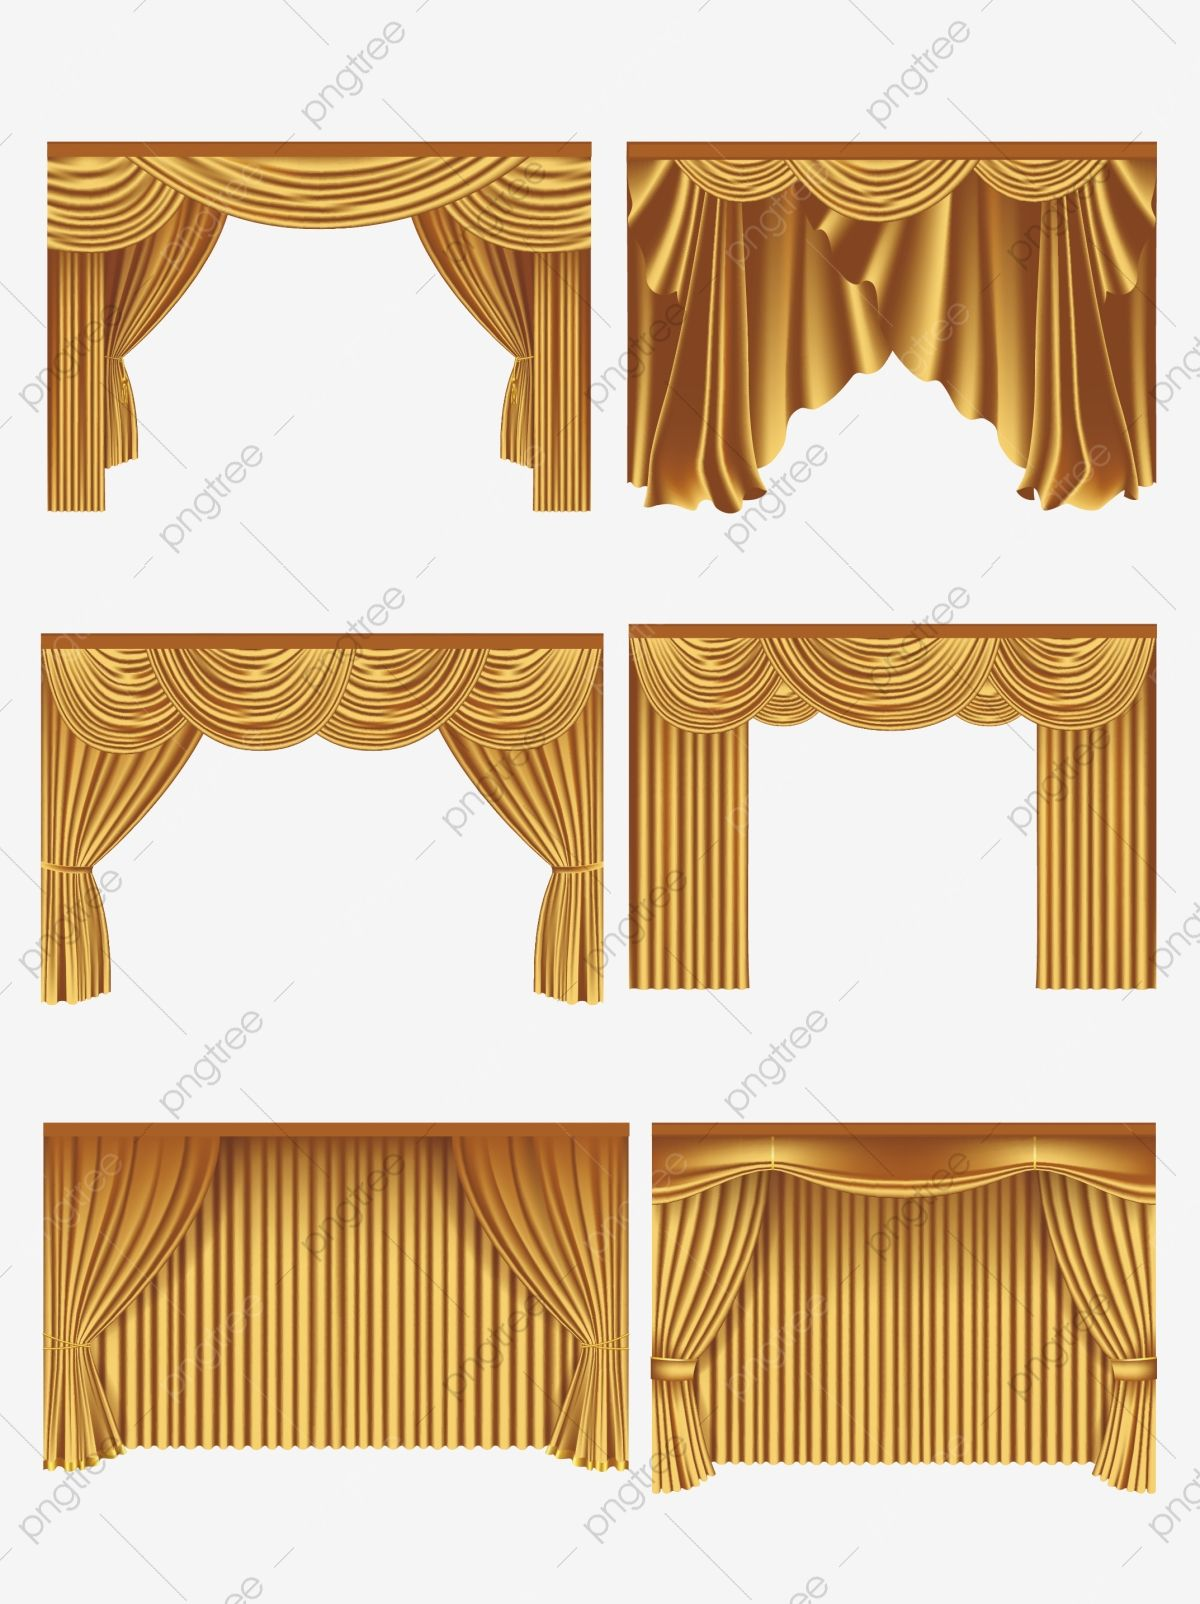 Stage Curtain Vector Material Cinema Clipart Stage Curtain Png And Vector With Transparent Background For Free Download Stage Curtains Curtains Vector Curtains